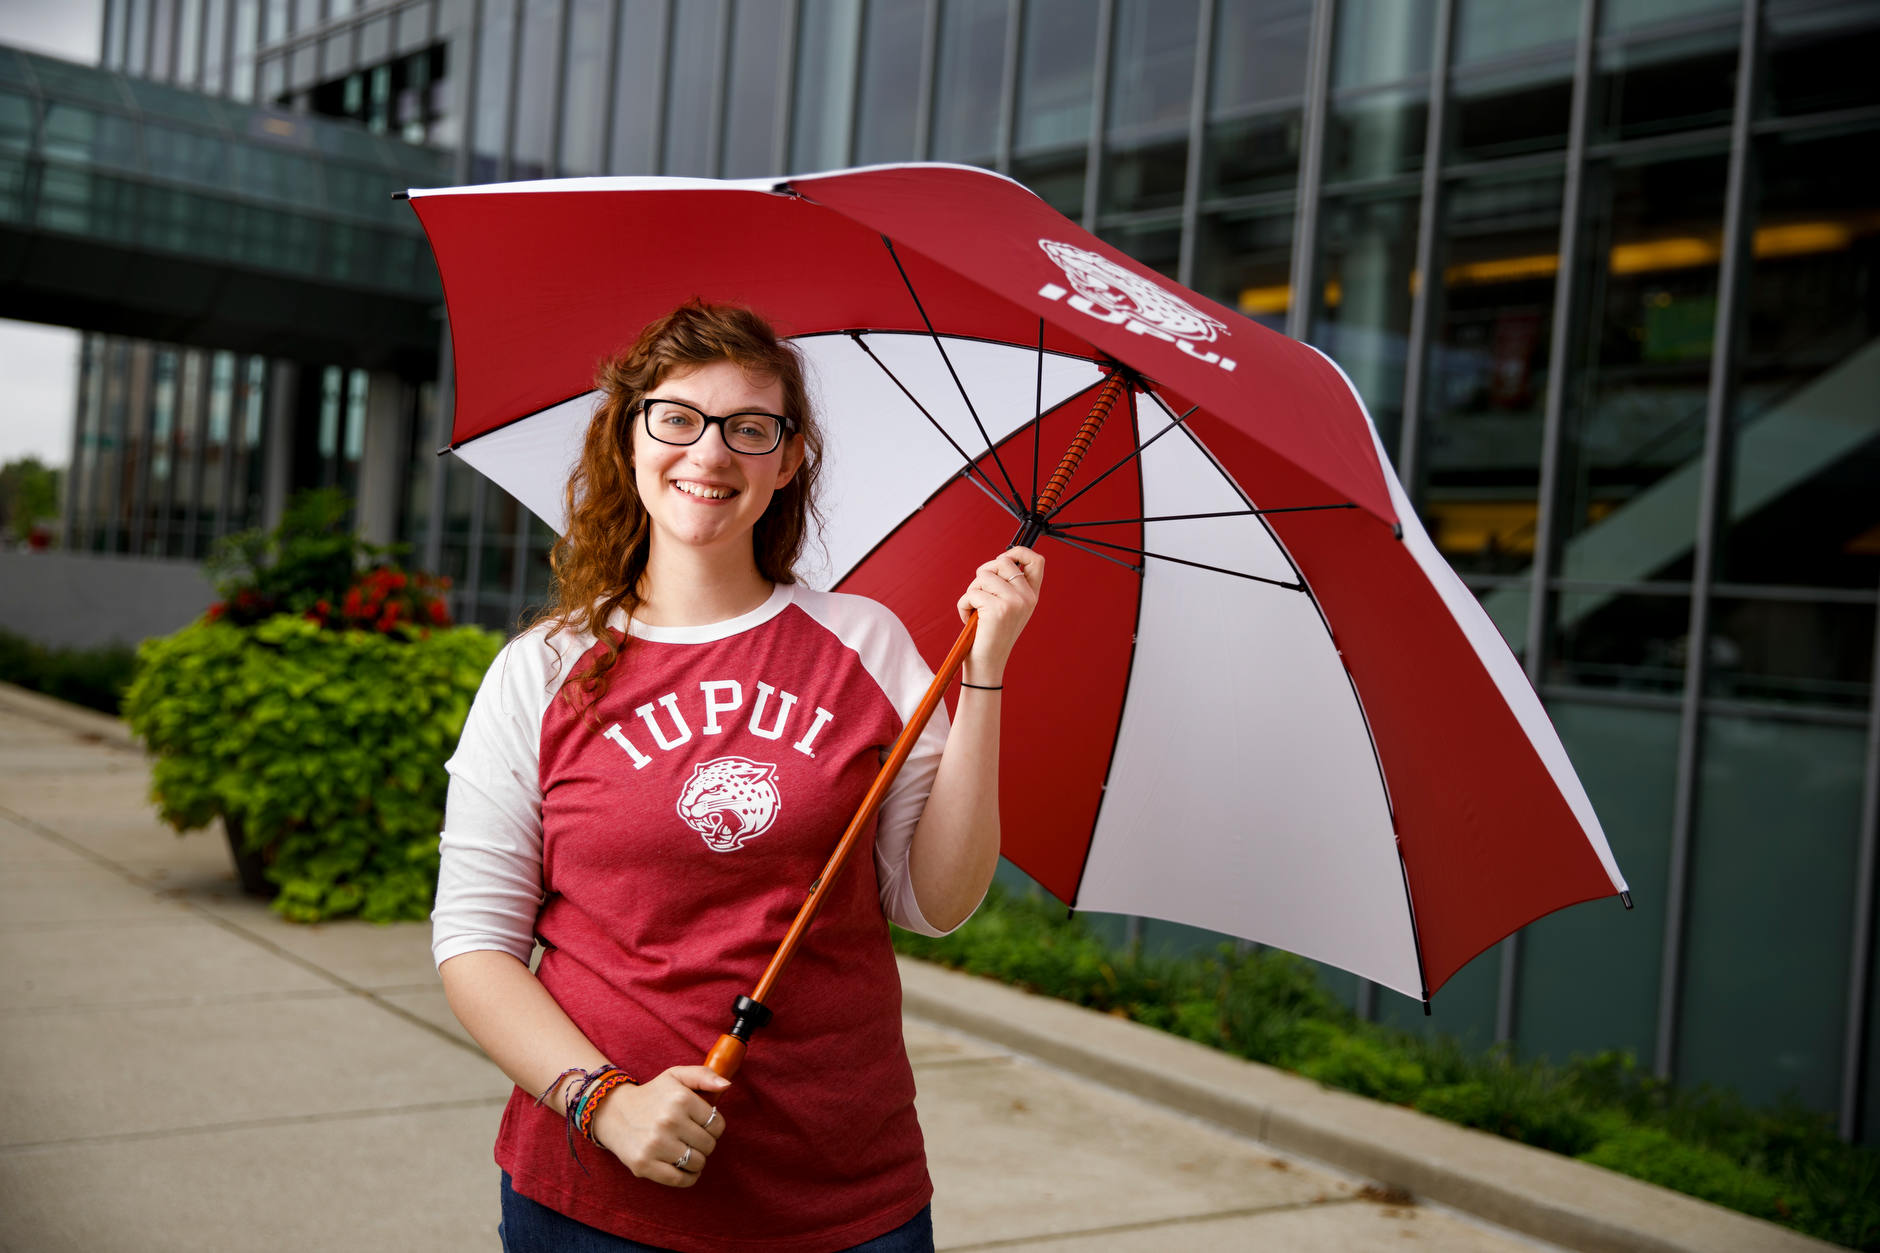 IUPUI student Miranda Williams poses for a portrait during a IUPUI apparel fashion photo shoot at the Campus Center on Wednesday, Aug. 8, 2018.